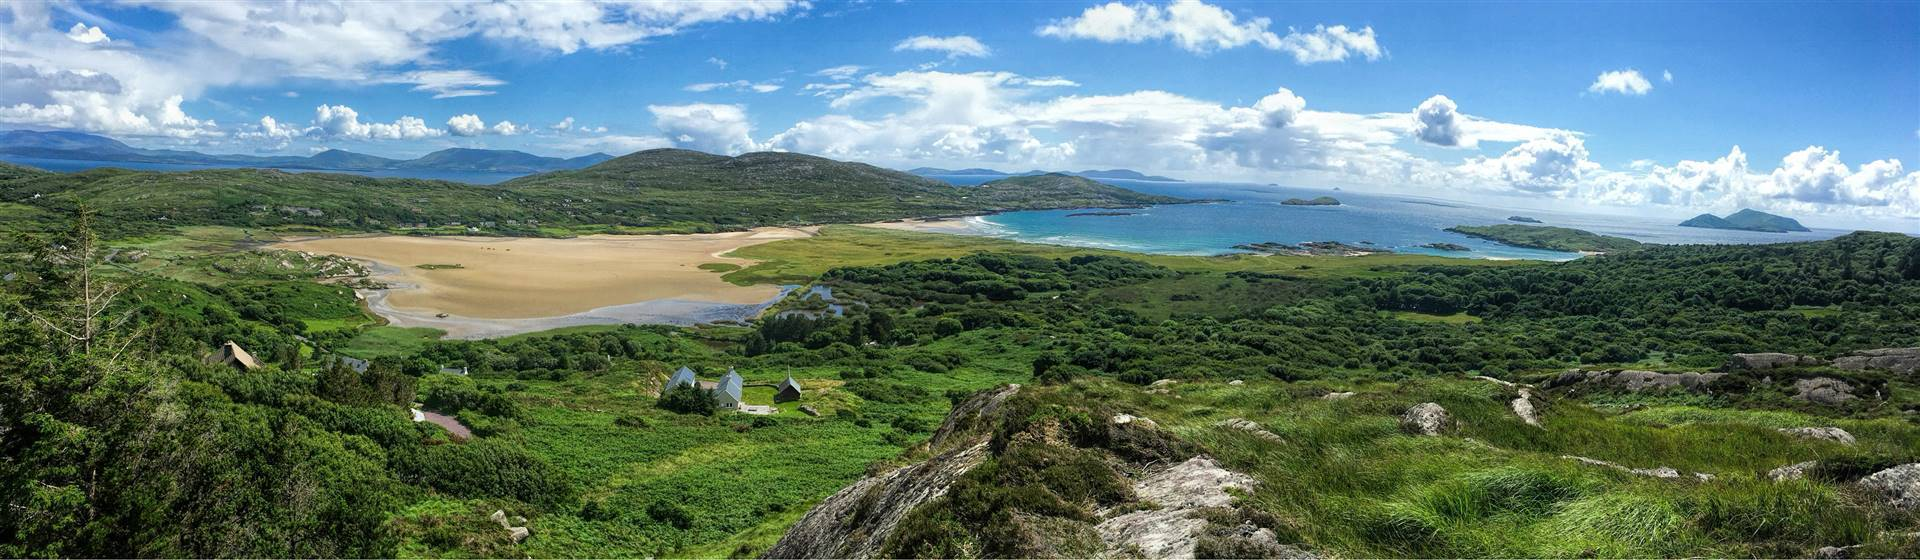 "<img src=""ringofkerry-shutterstock_572284069.jpeg"" alt=""Ring of Kerry""/>"